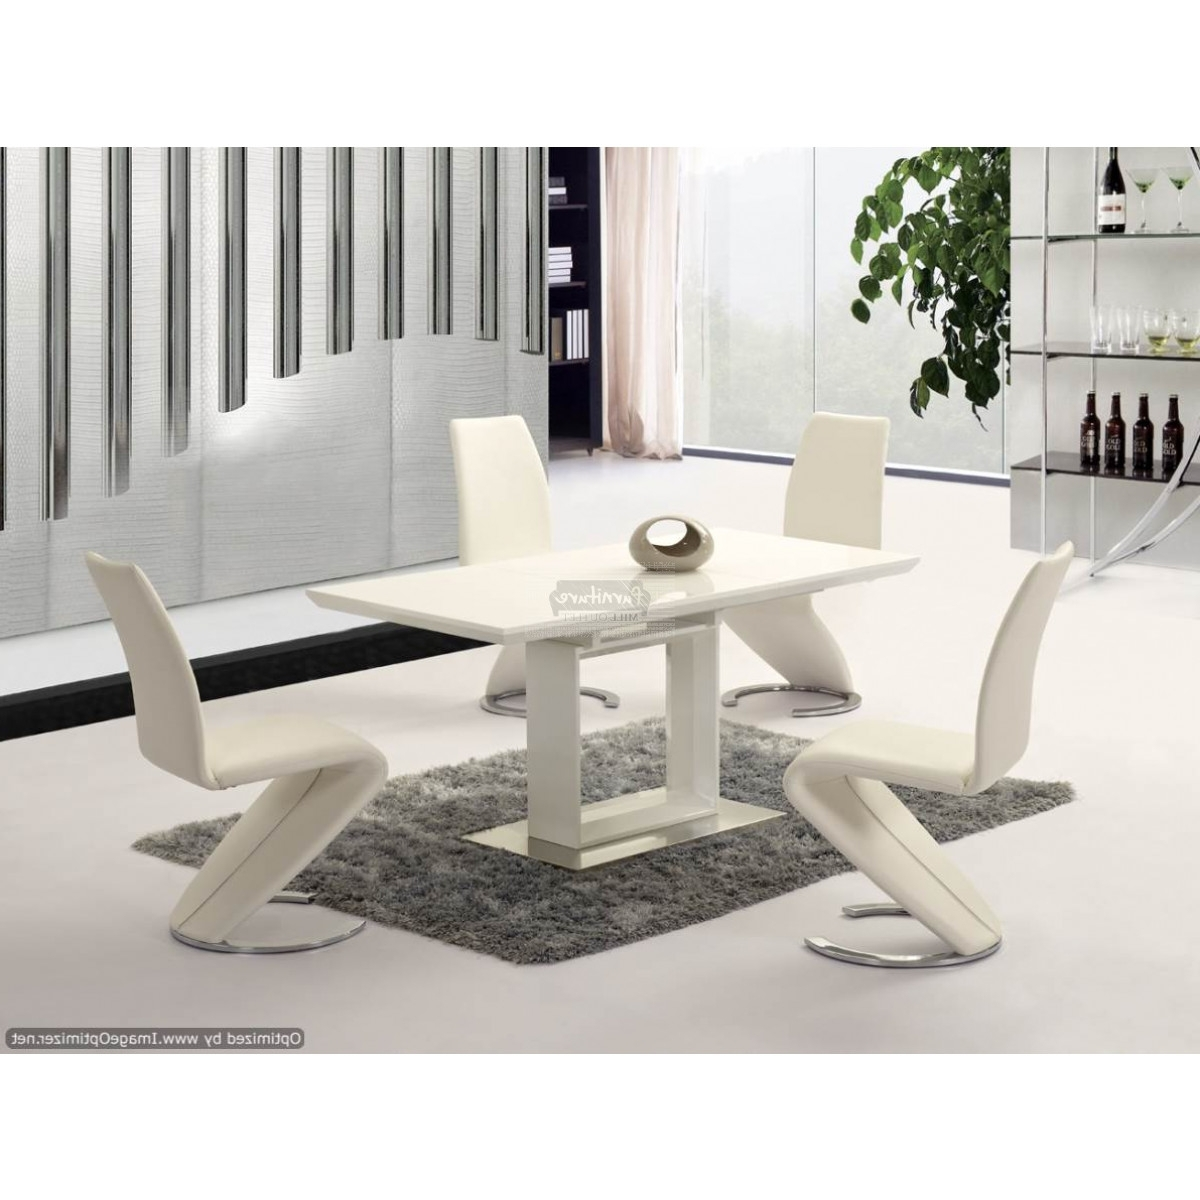 Gloss Dining Set With Widely Used Space White High Gloss Extending Dining Table – 120Cm To 160Cm (View 25 of 25)